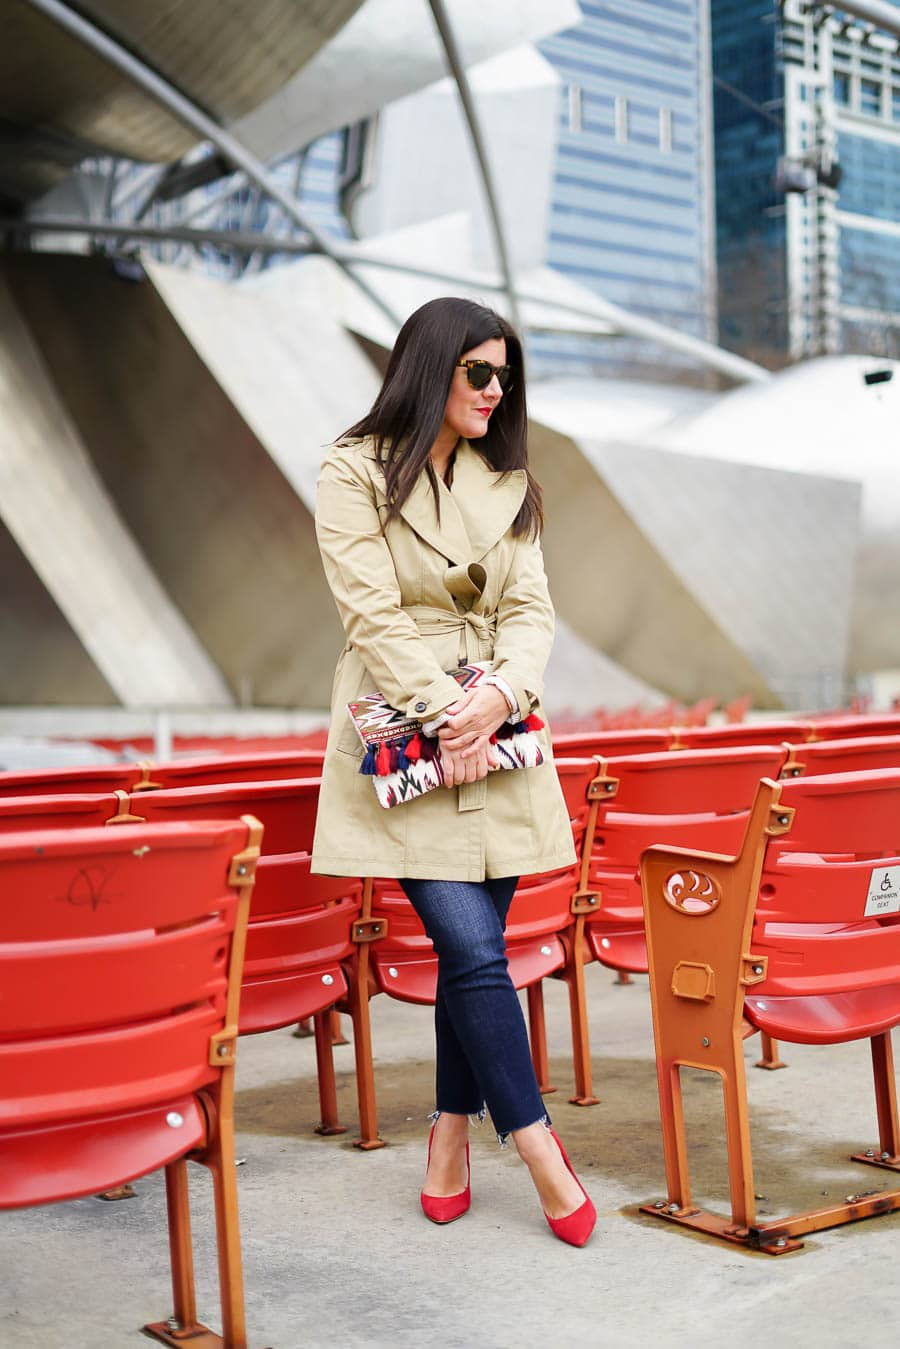 A Lily Love Affair shares how to wear a trench coat for Fall with jeans and red heels